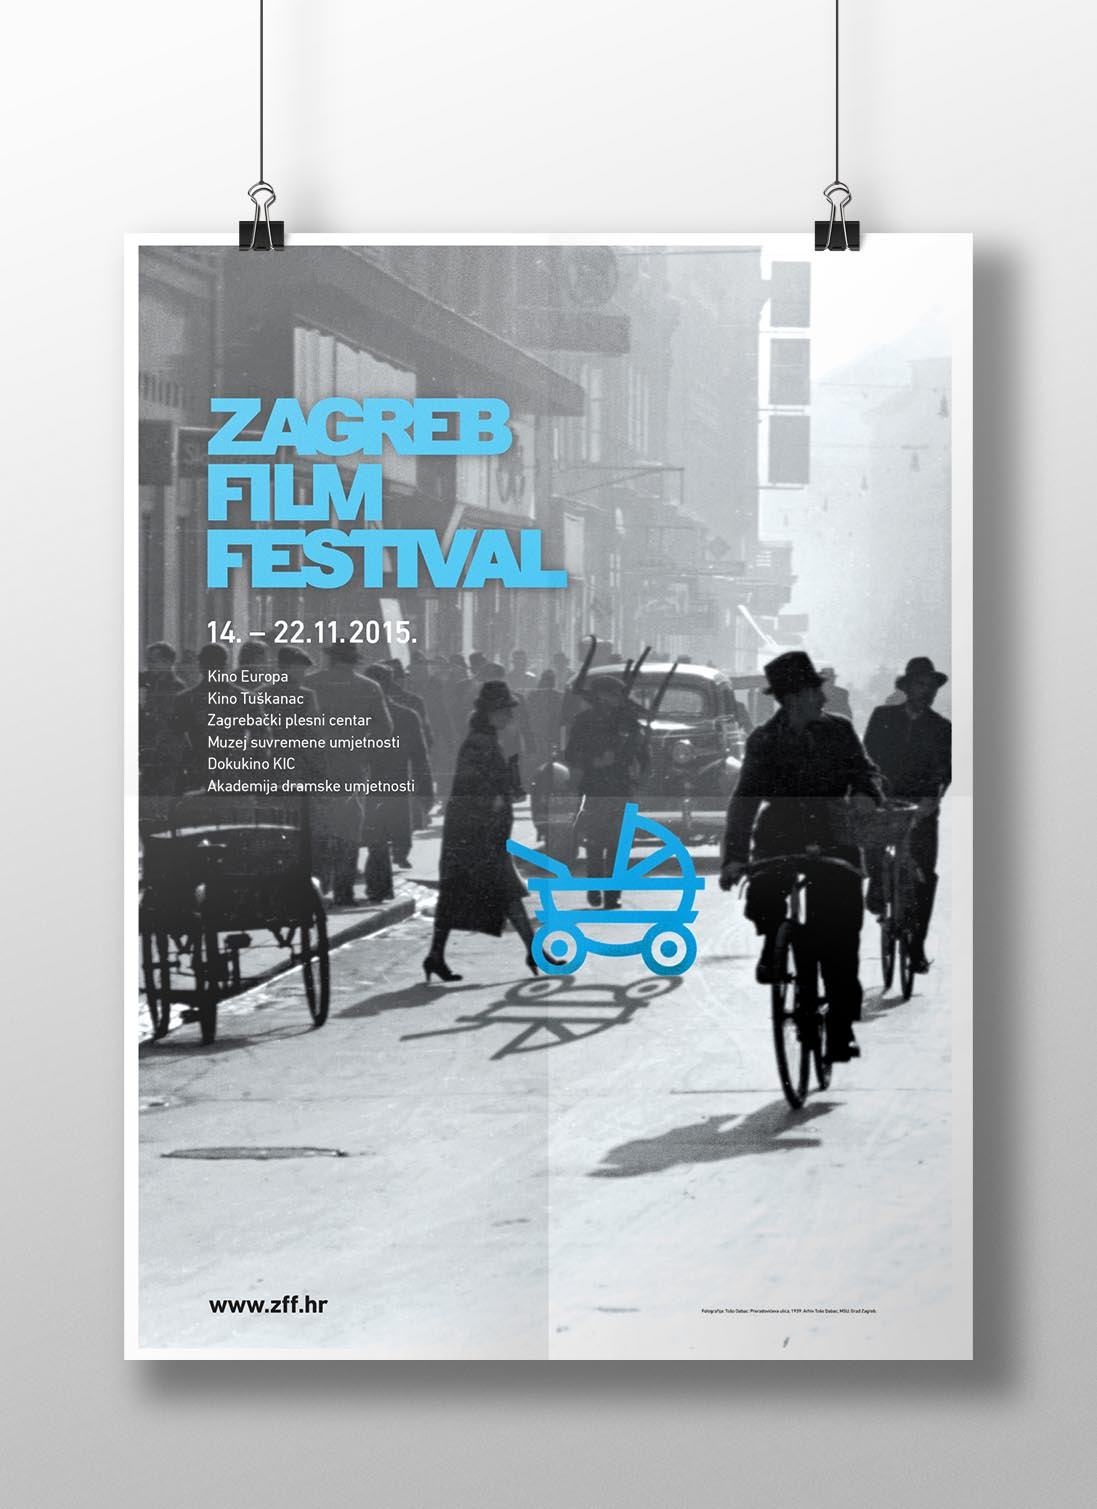 Zagreb Film Festival rejected work